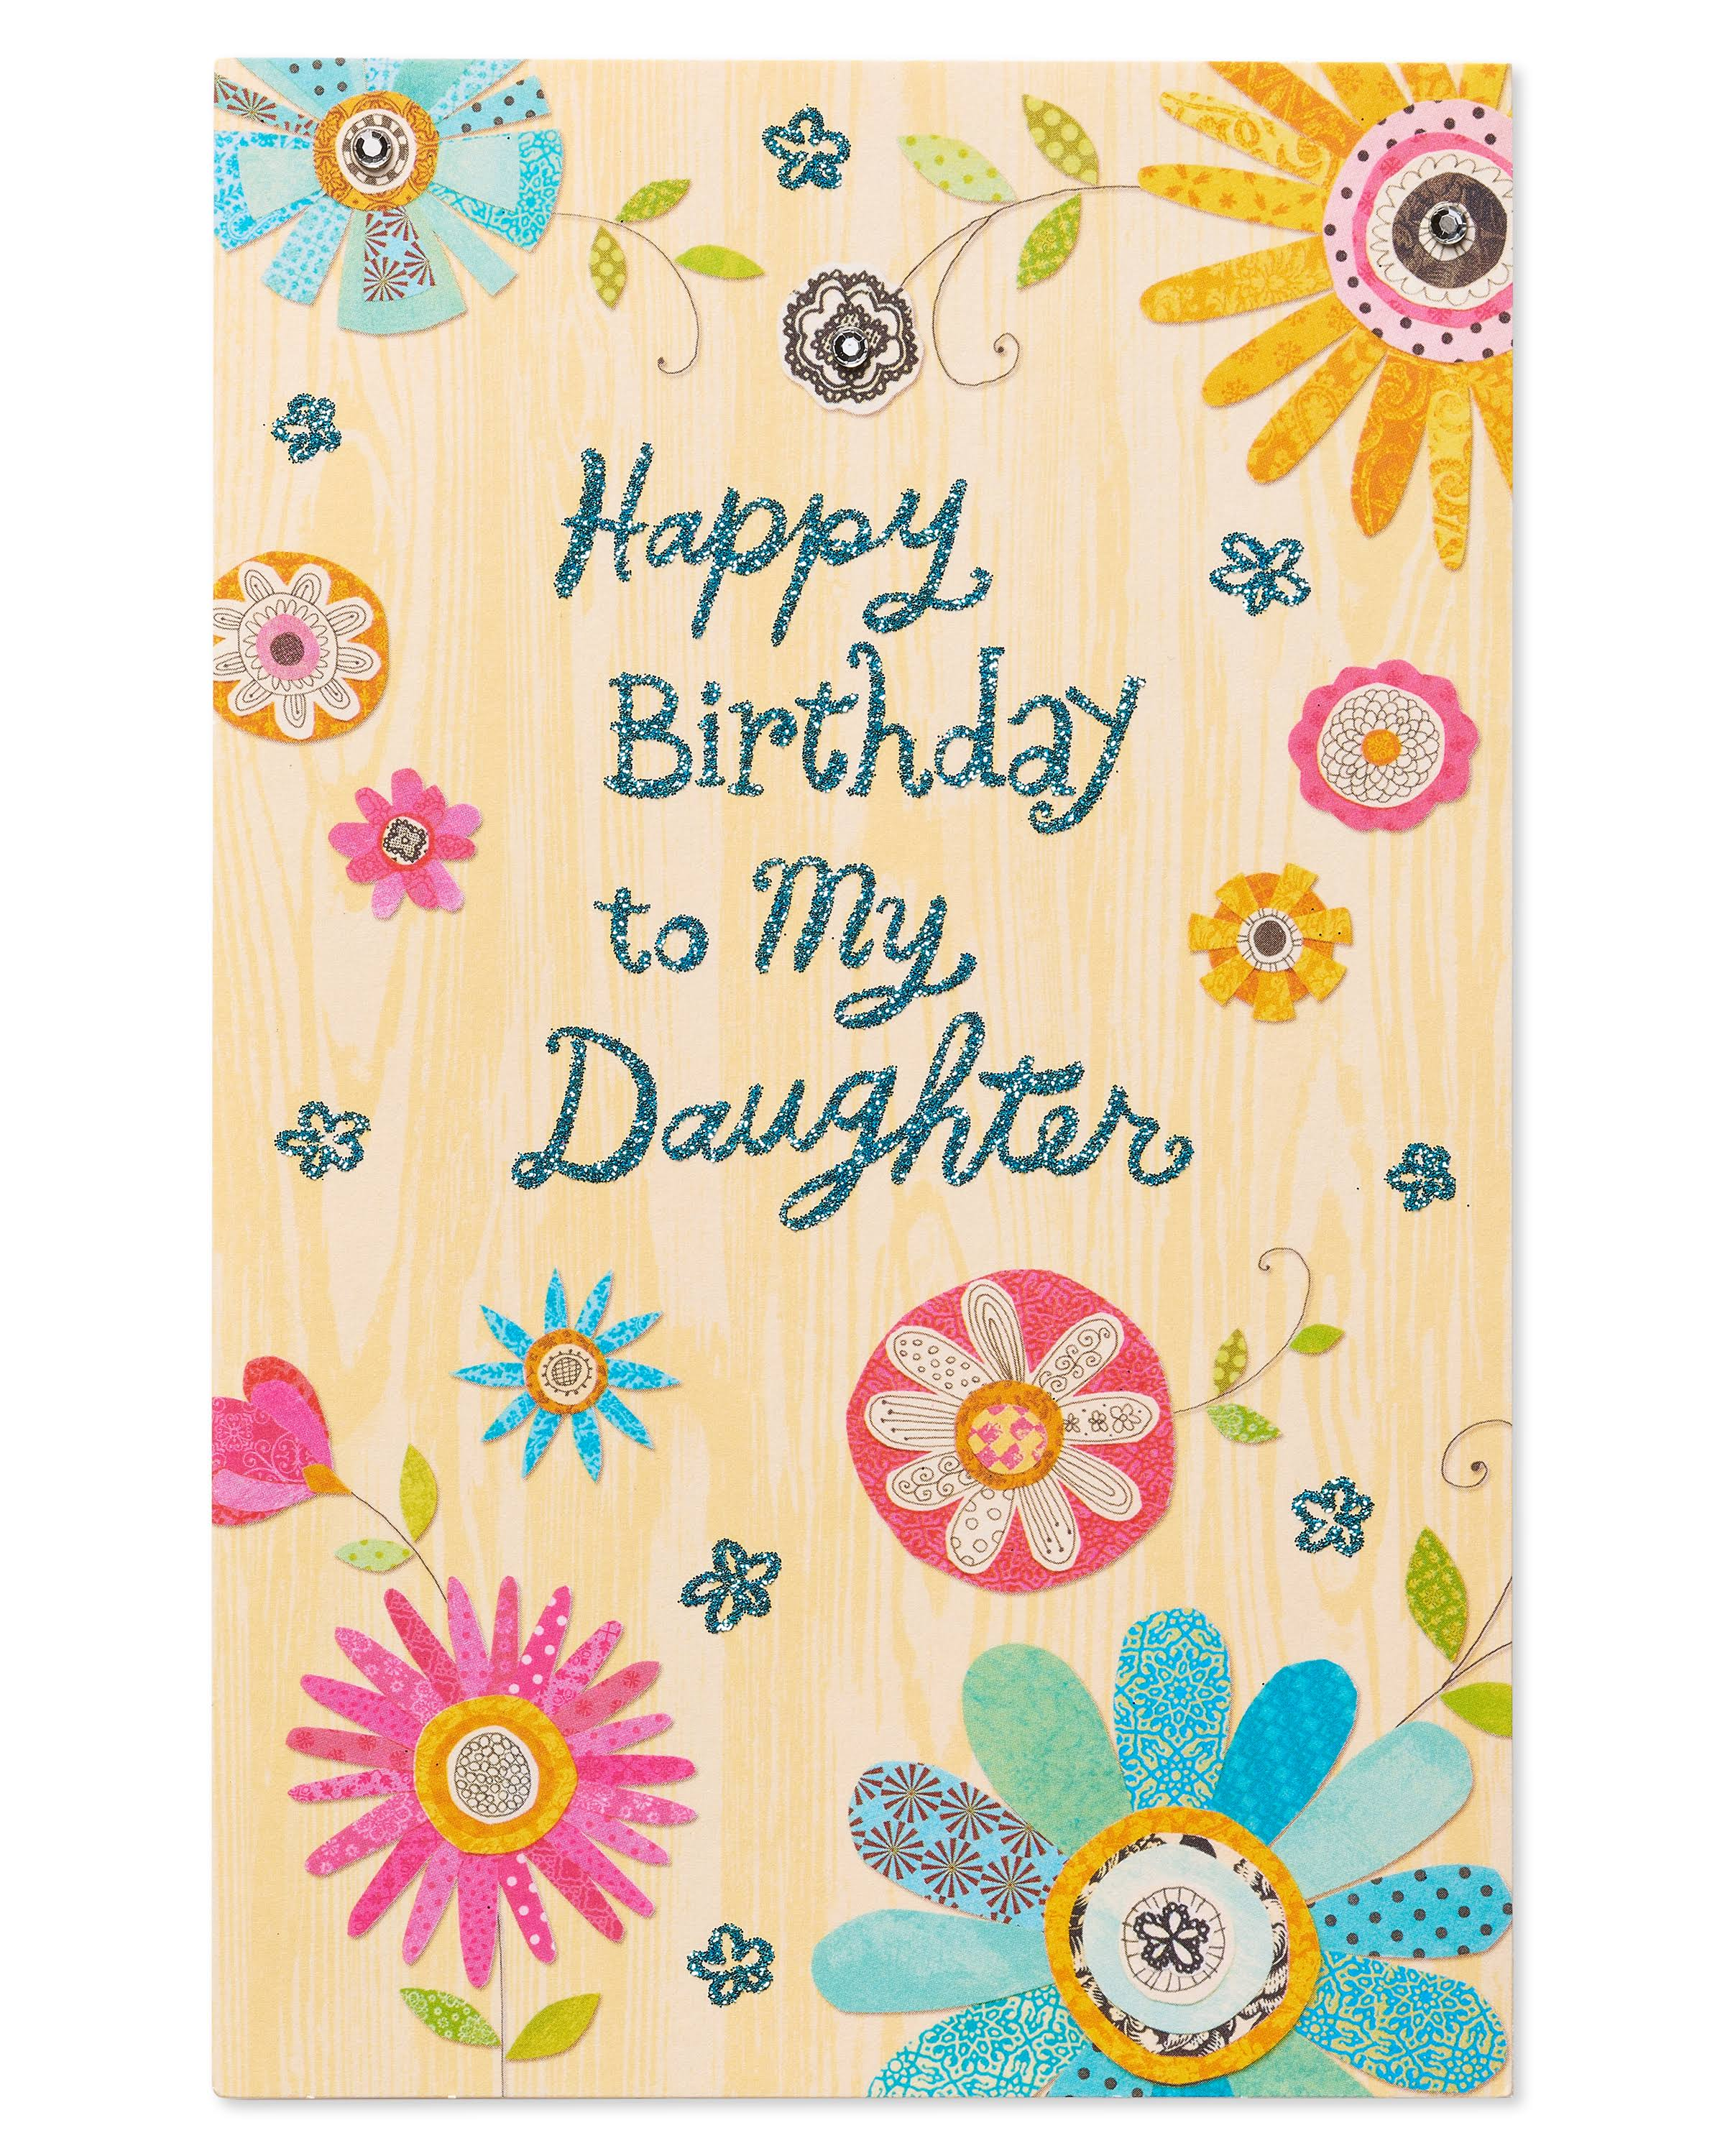 American Greetings Colorful Flowers Birthday Card for Daughter with Rhinestone